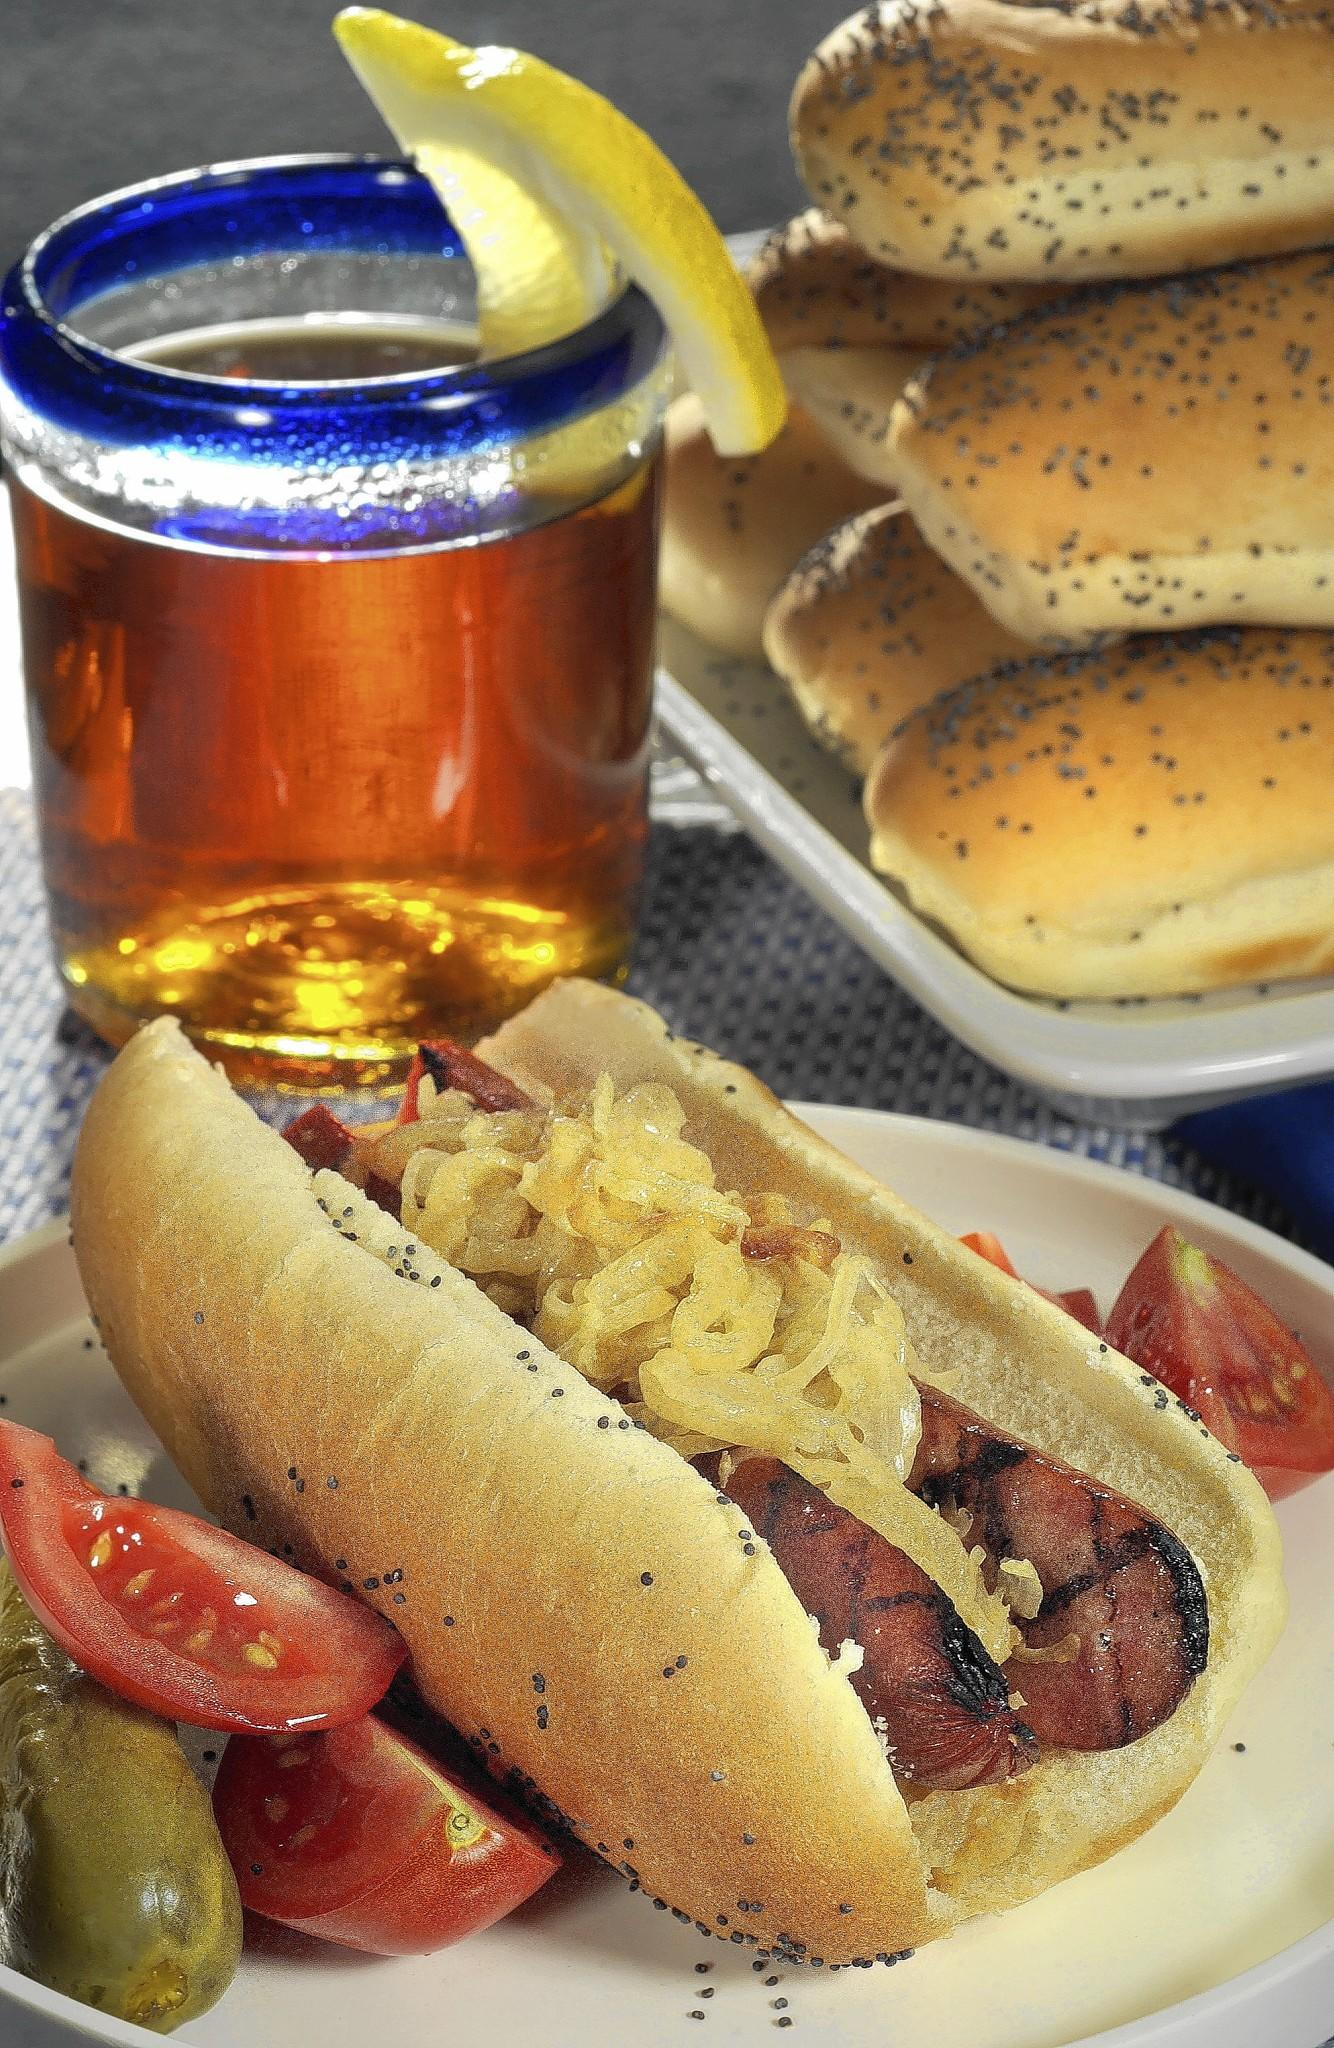 Rooting for Germany on Sunday? Quick-to-cook sausages and highly flavored sauerkraut make a winning team.